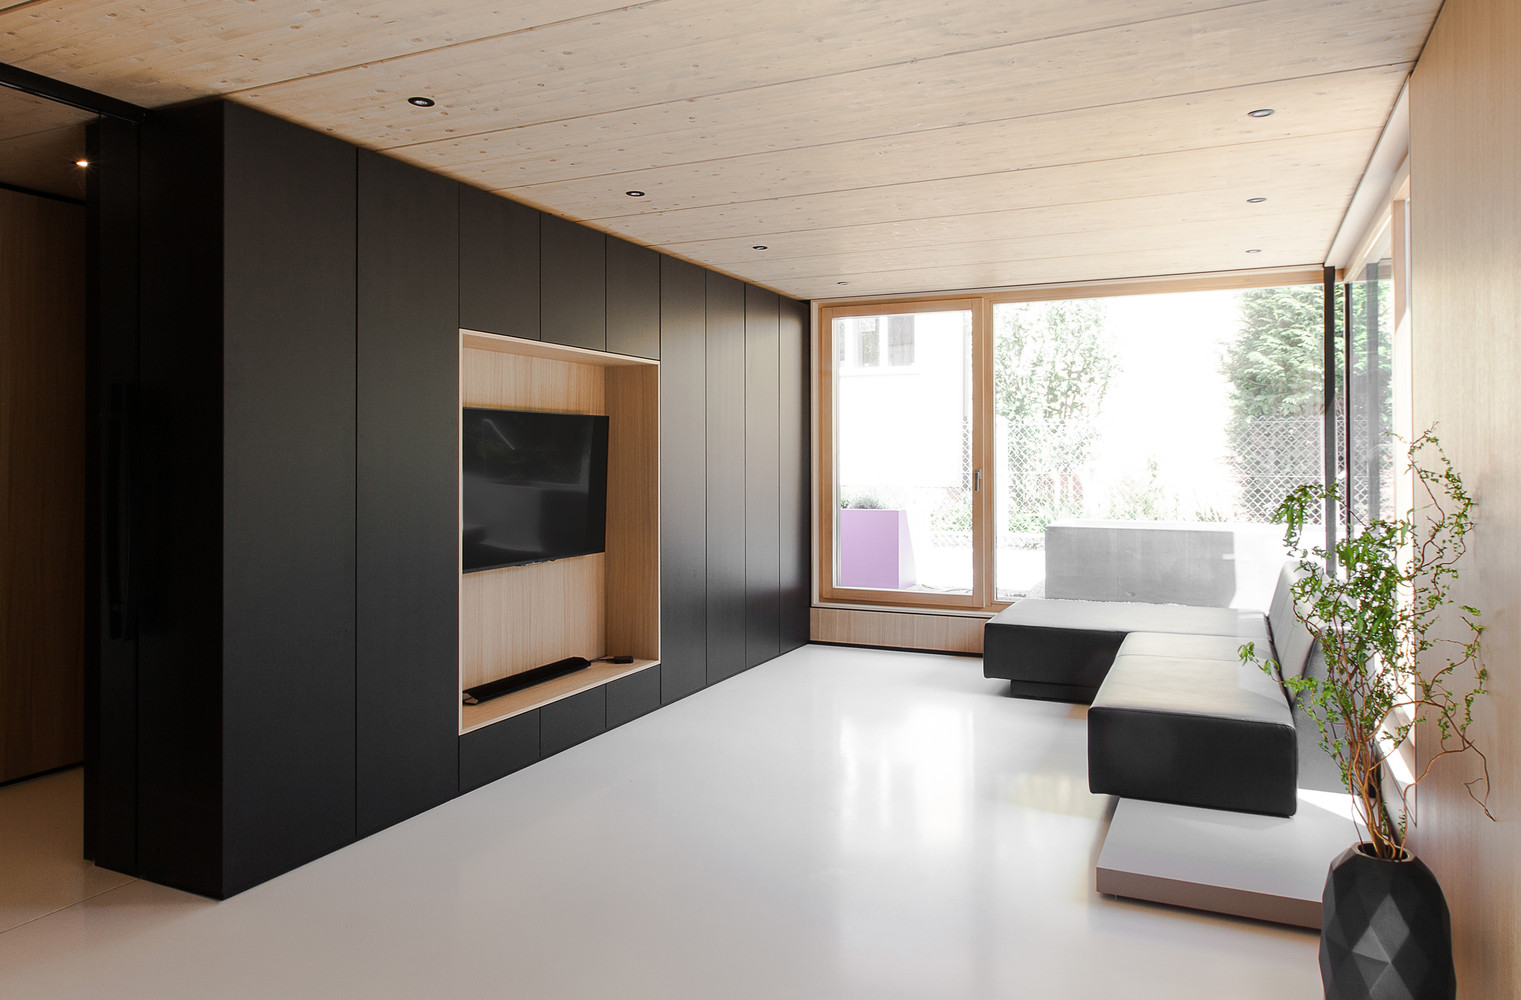 House b by format elf architekten in germany for Roof designs interior